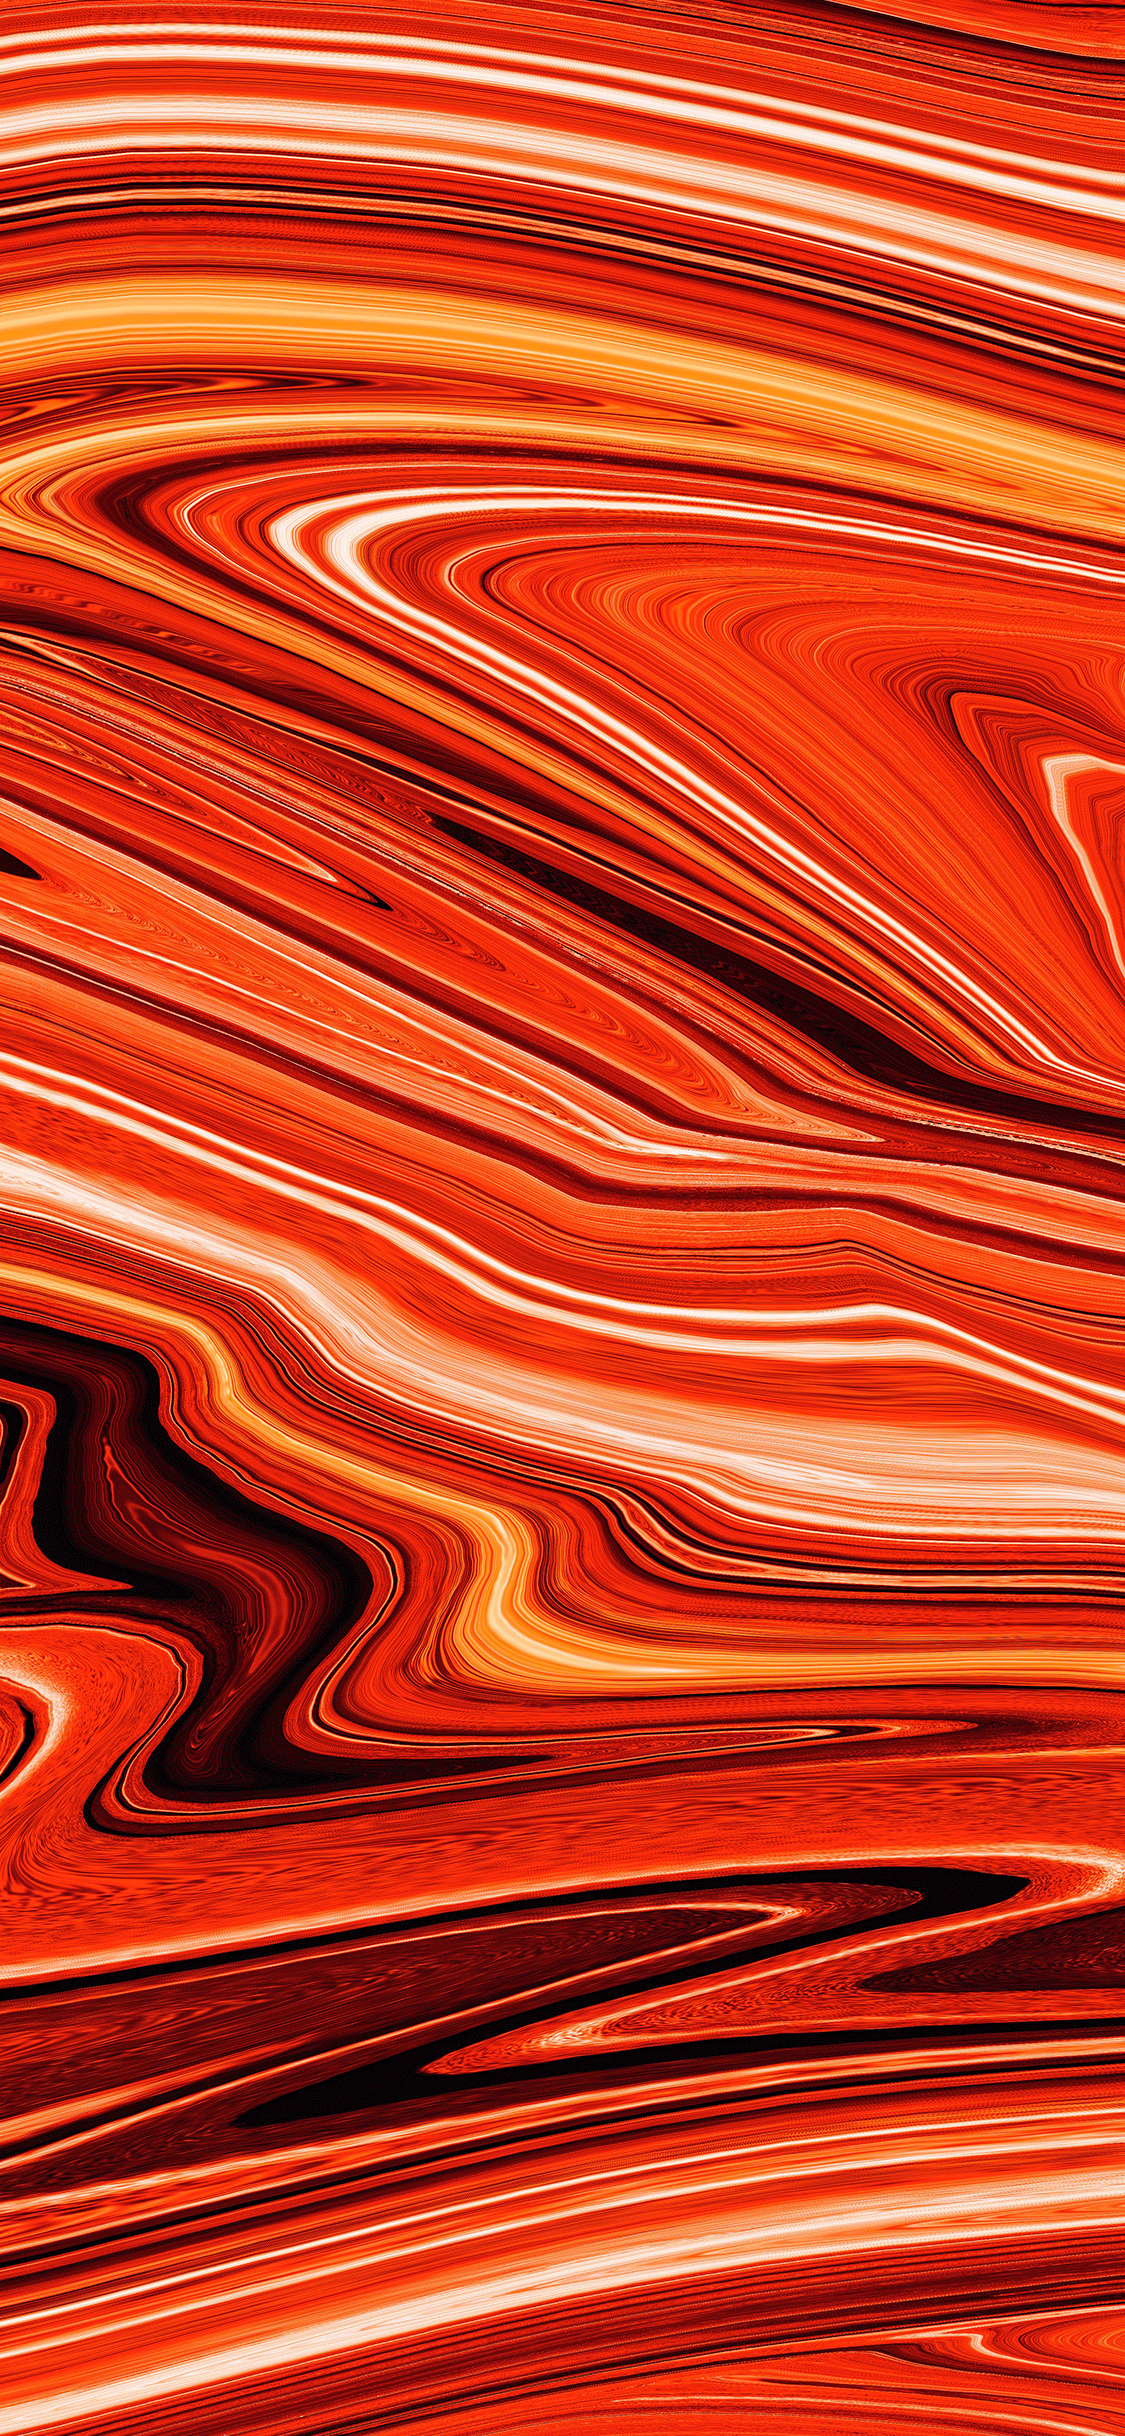 iPhone wallpaper abstract shine orange Fonds d'écran iPhone du 15/10/2018